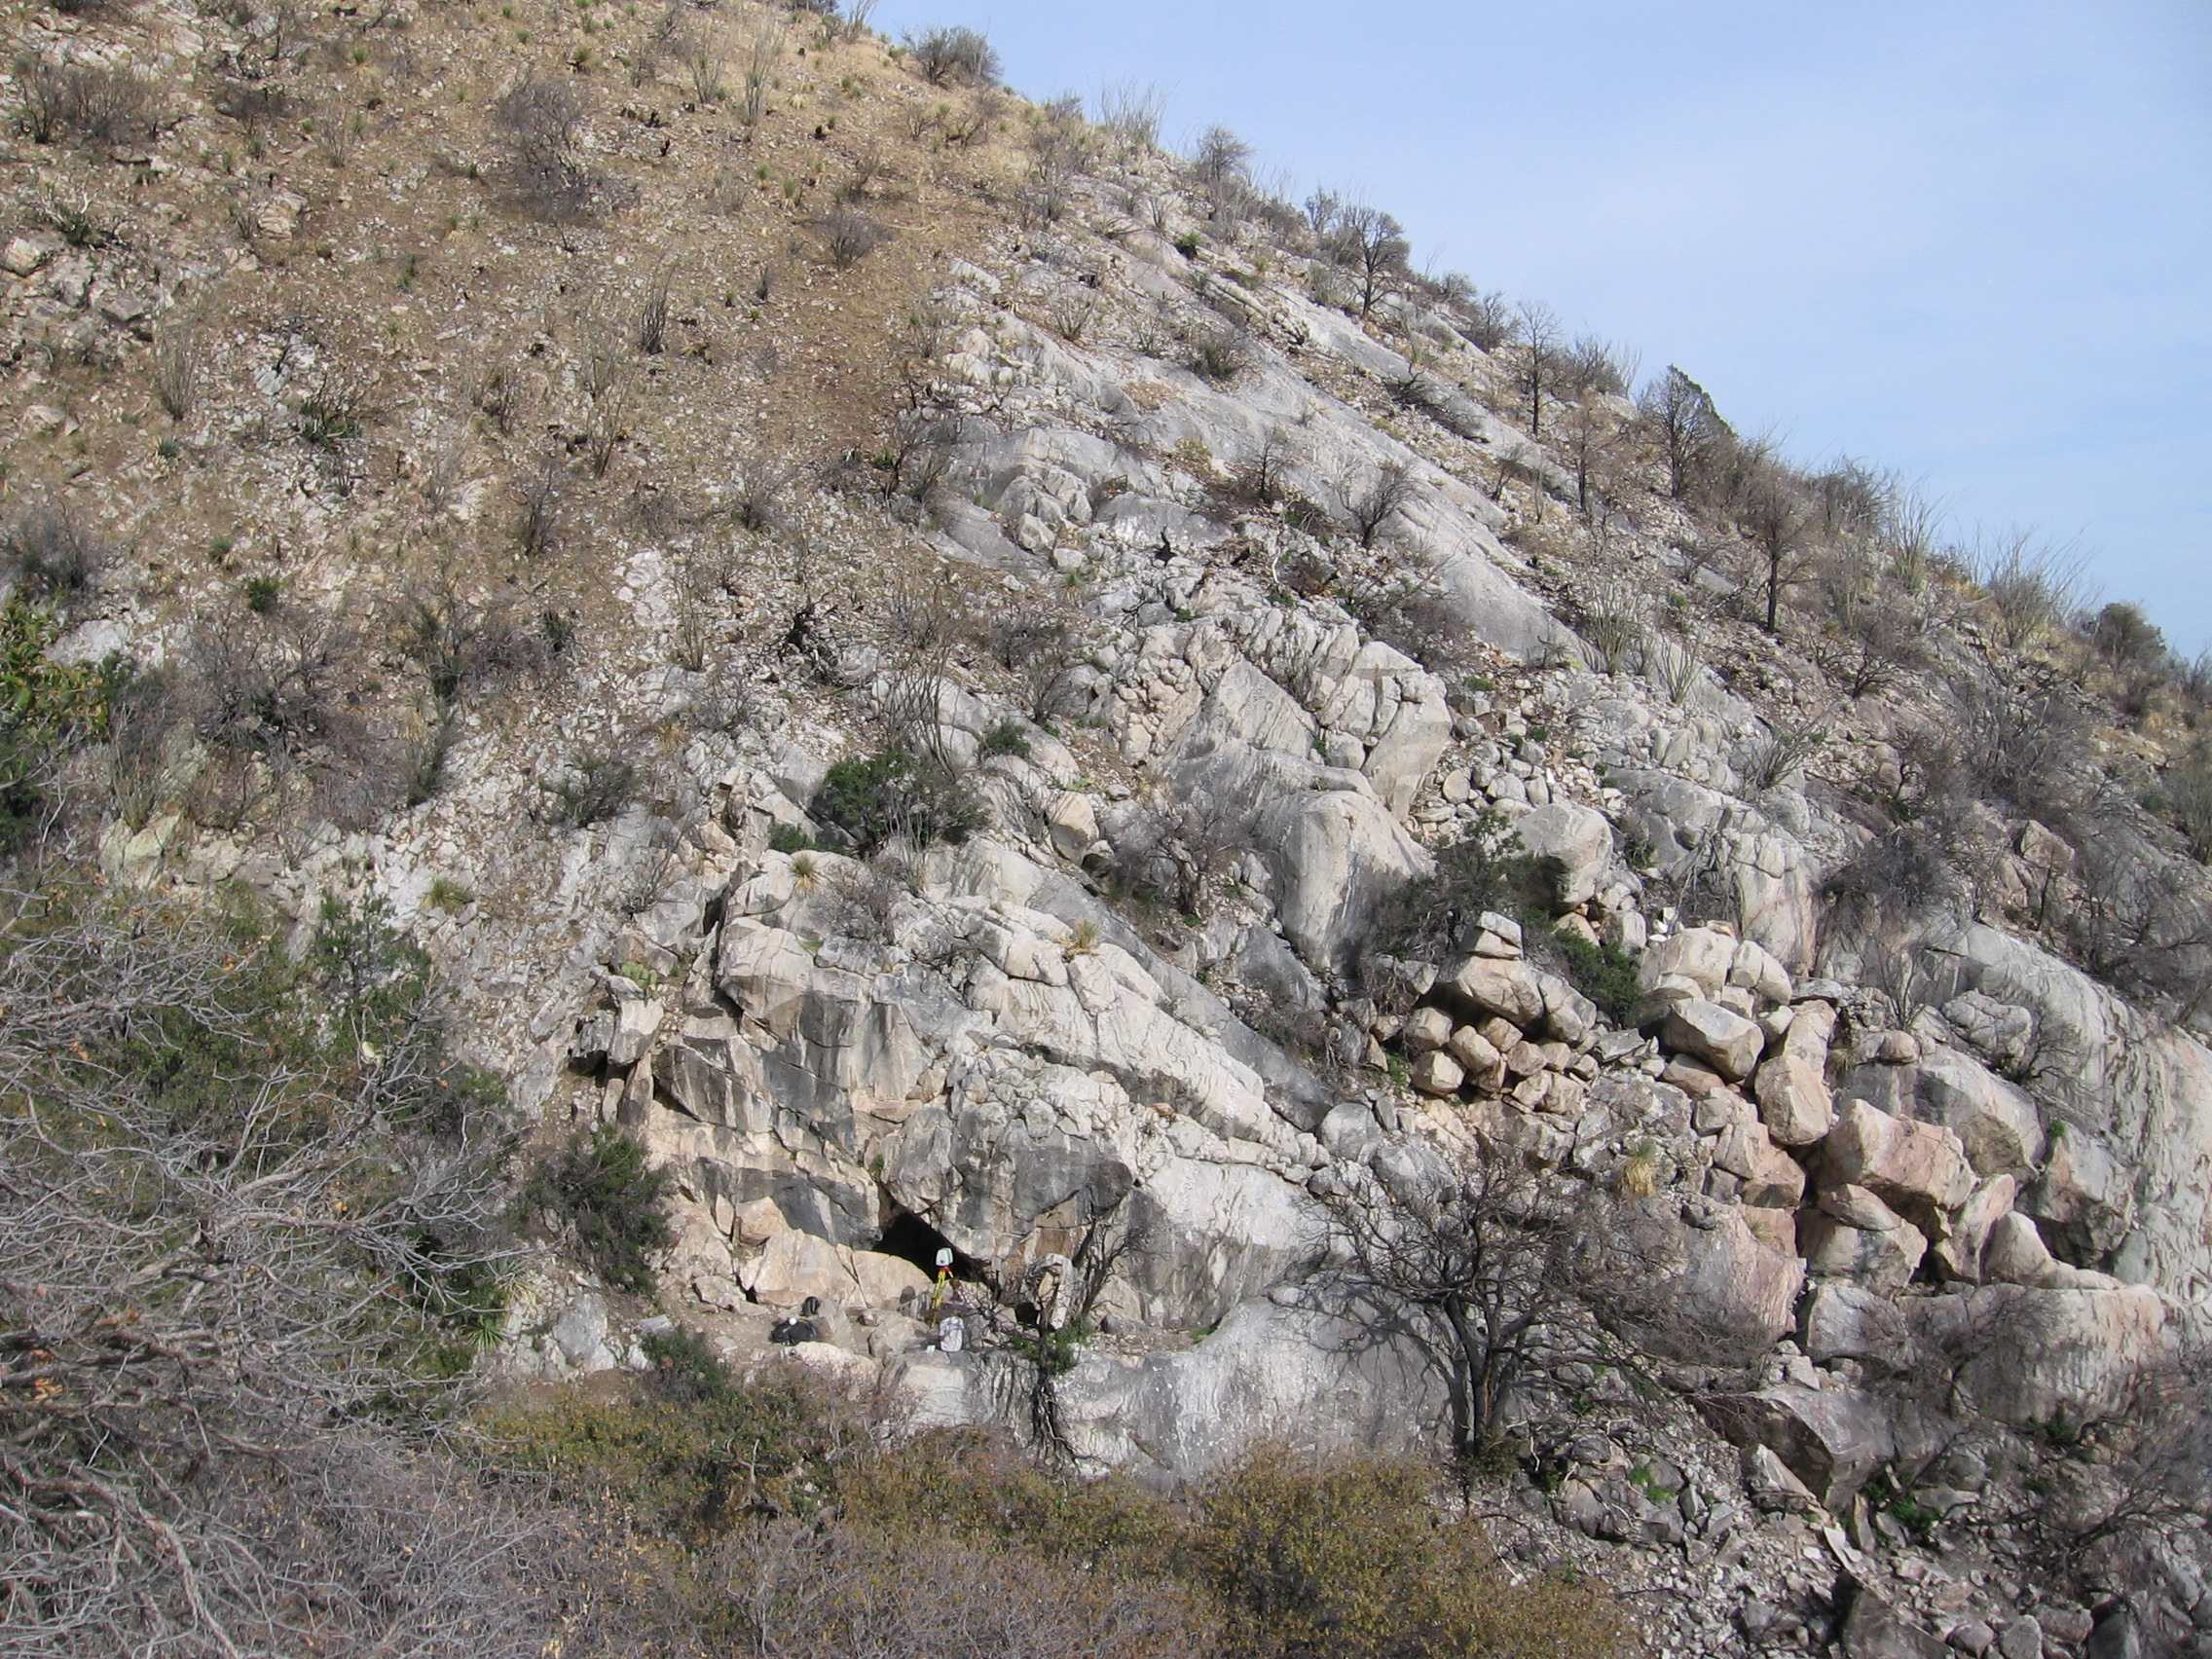 Figure 5: Entrance to Coronado Cave. The limestone host rock is clearly bounded on the uphill side by a change in lithology, possibly skarnification because the Huachuca granite is exposed nearby, or perhaps another formation of the Naco Group.